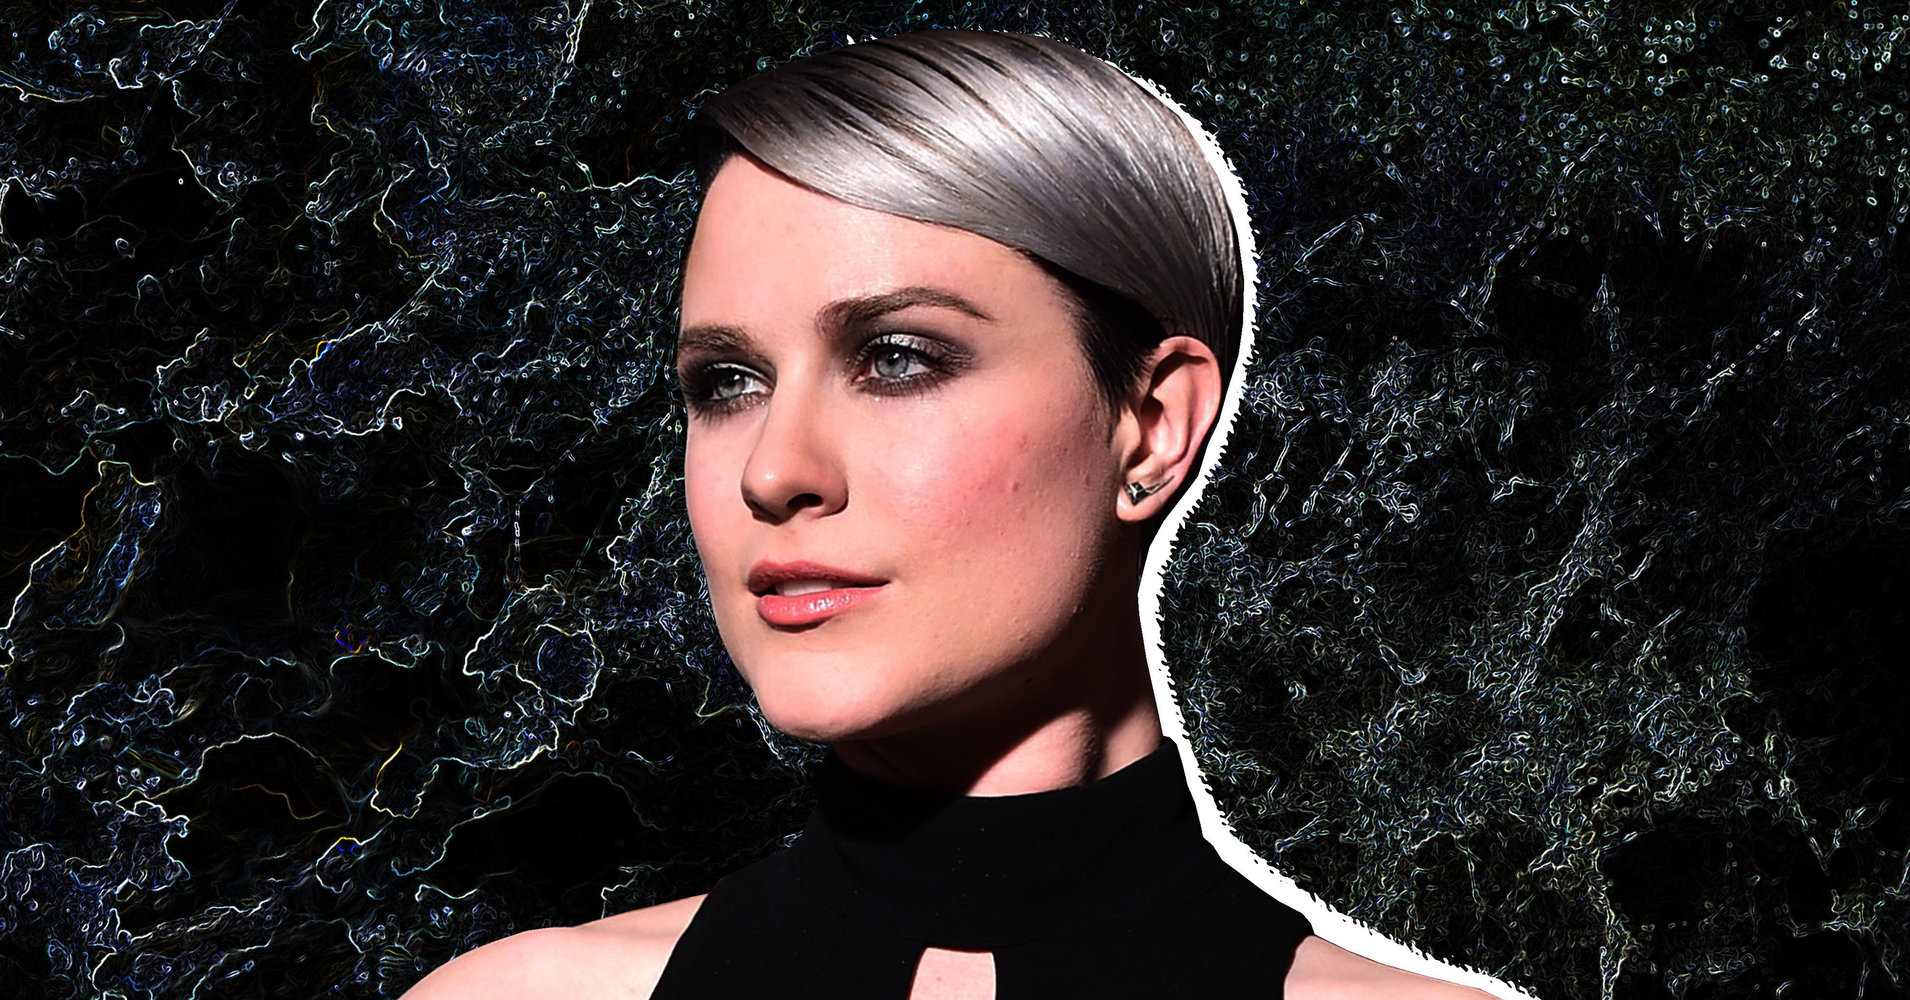 Evan Rachel Wood Is An Abuse Survivor. In Her New Movie 'Allure,' She Plays An Abuser.